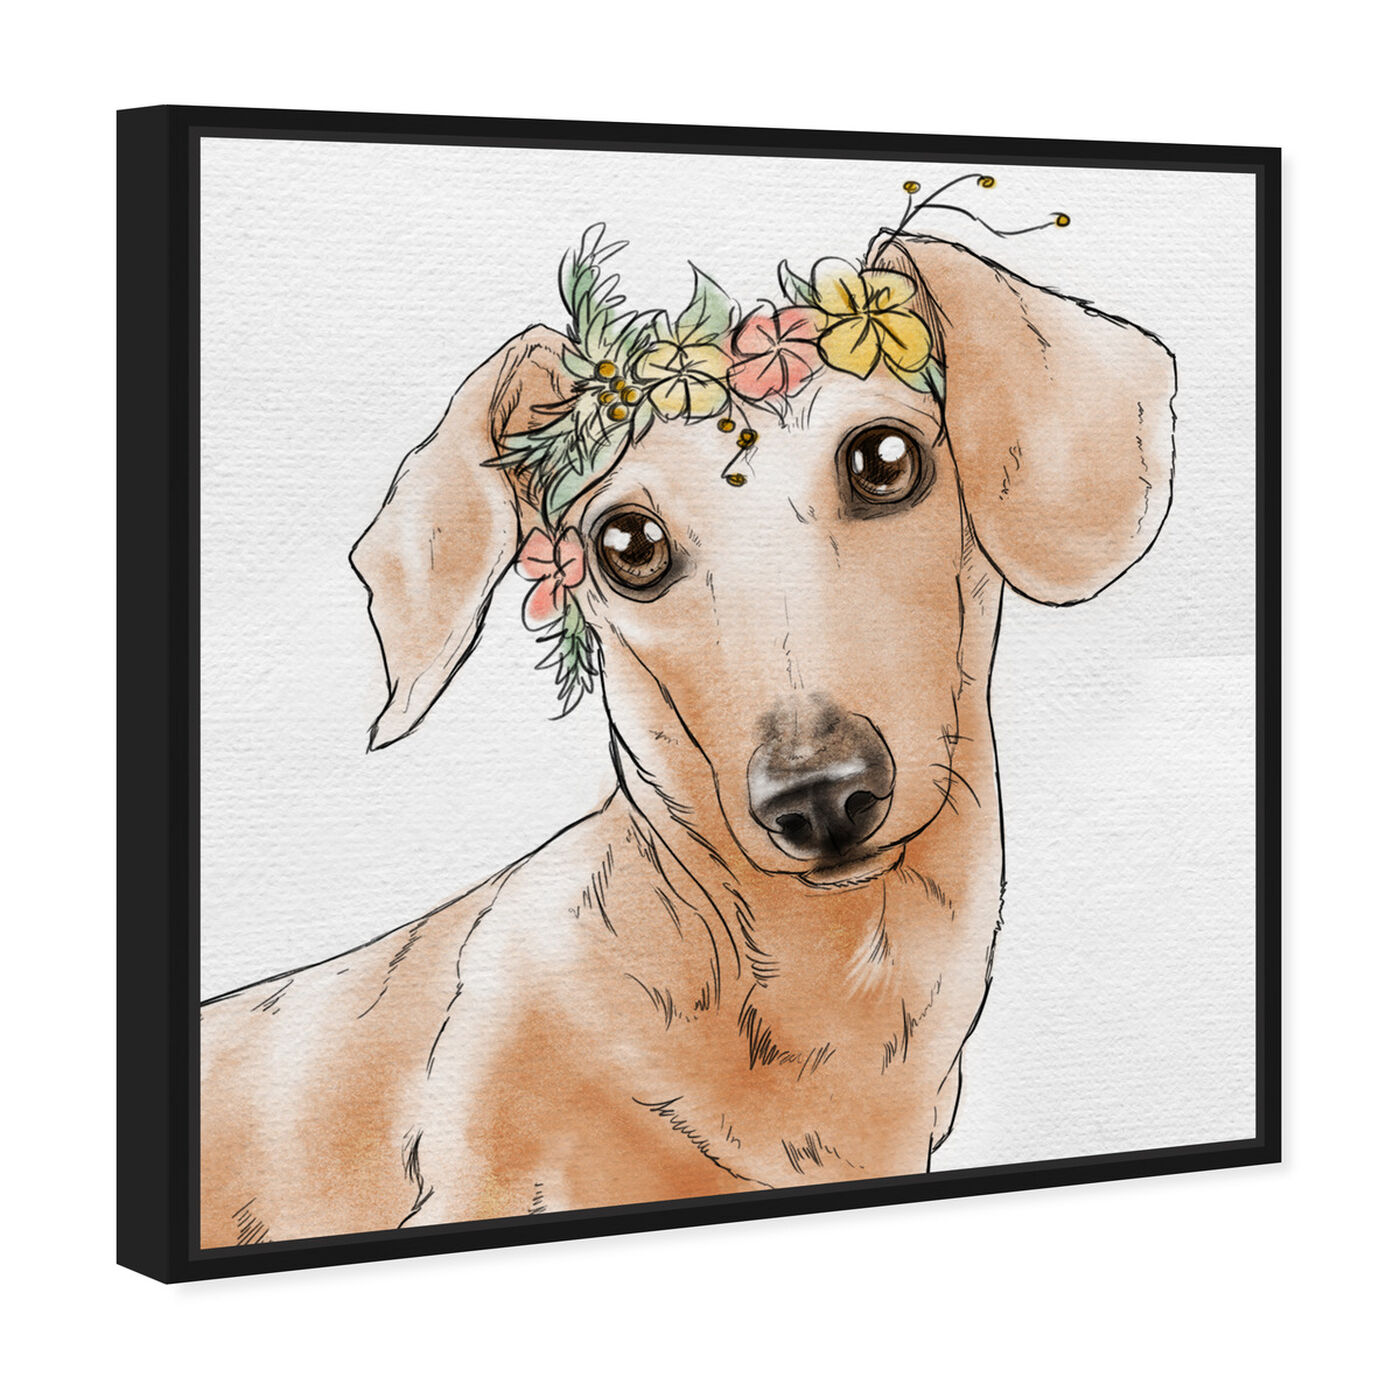 Angled view of Floral Crown Dachshund featuring animals and dogs and puppies art.